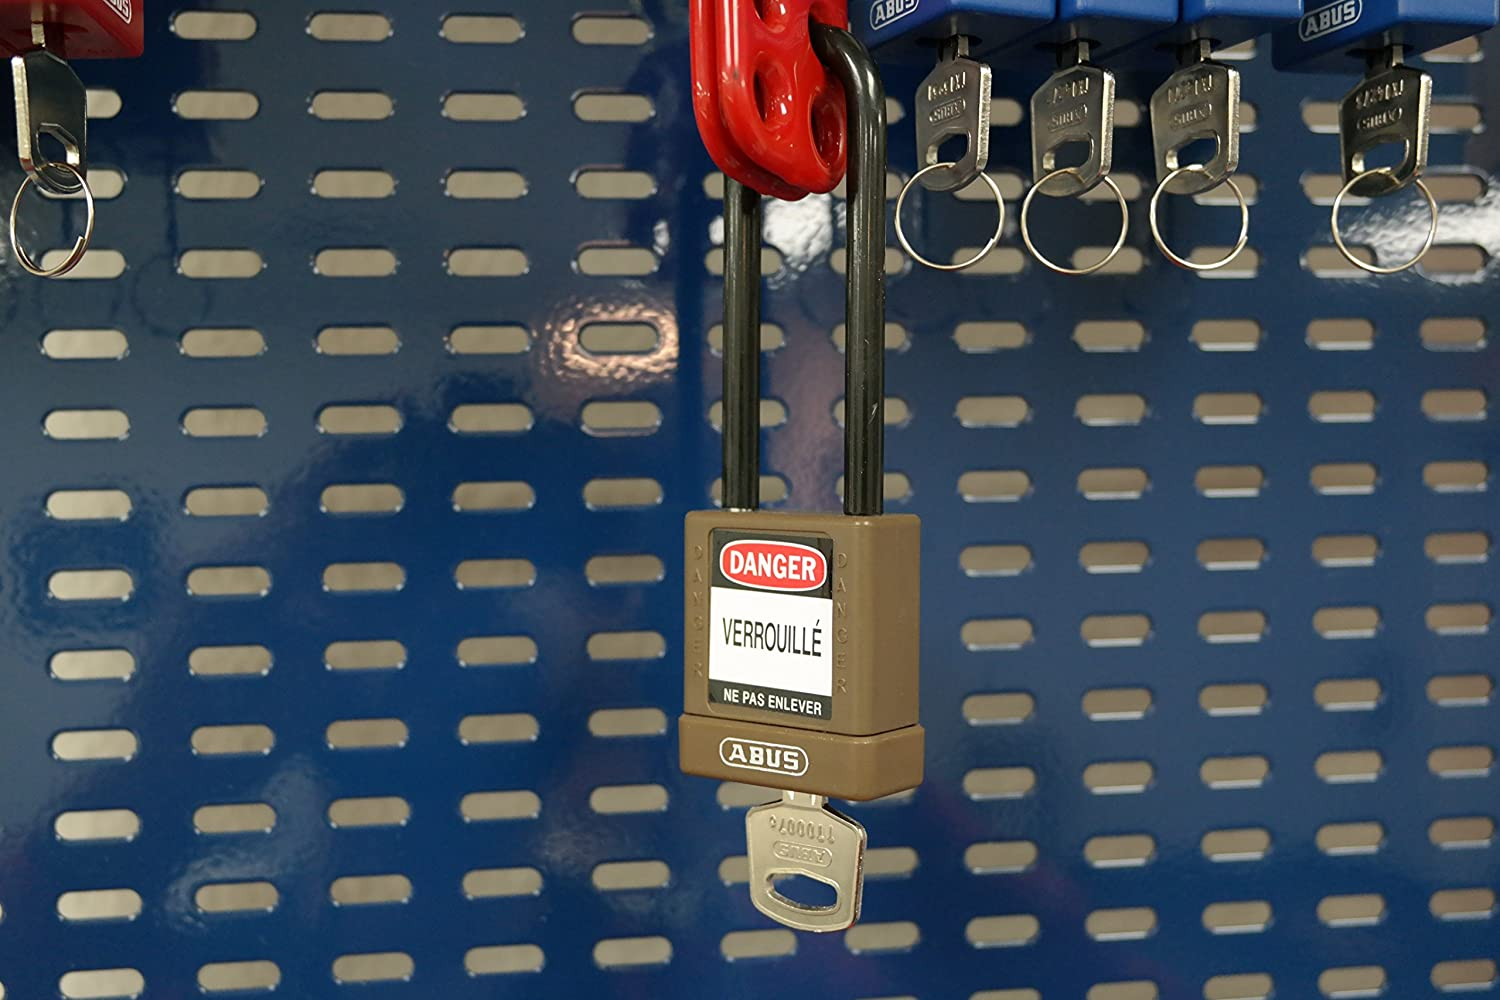 ABUS 74HB//40-75 KA Safety Lockout Non-Conductive Keyed Alike Padlock with 3-Inch Shackle Brown 74HB//40-75 KA Brown 3 Shackle